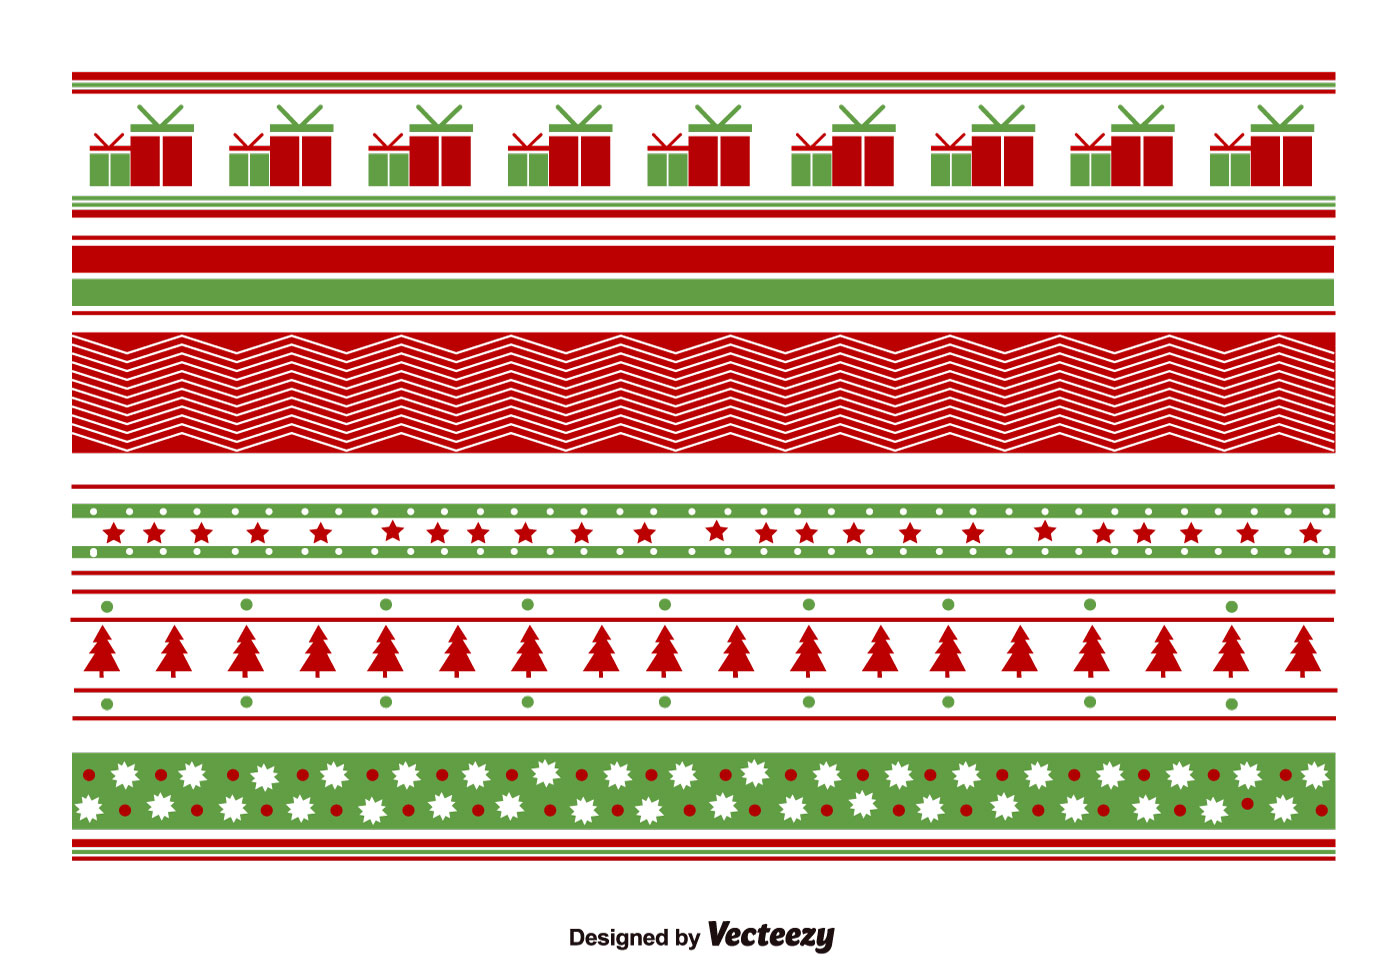 Geometrical Christmas Patterns Download Free Vector Art